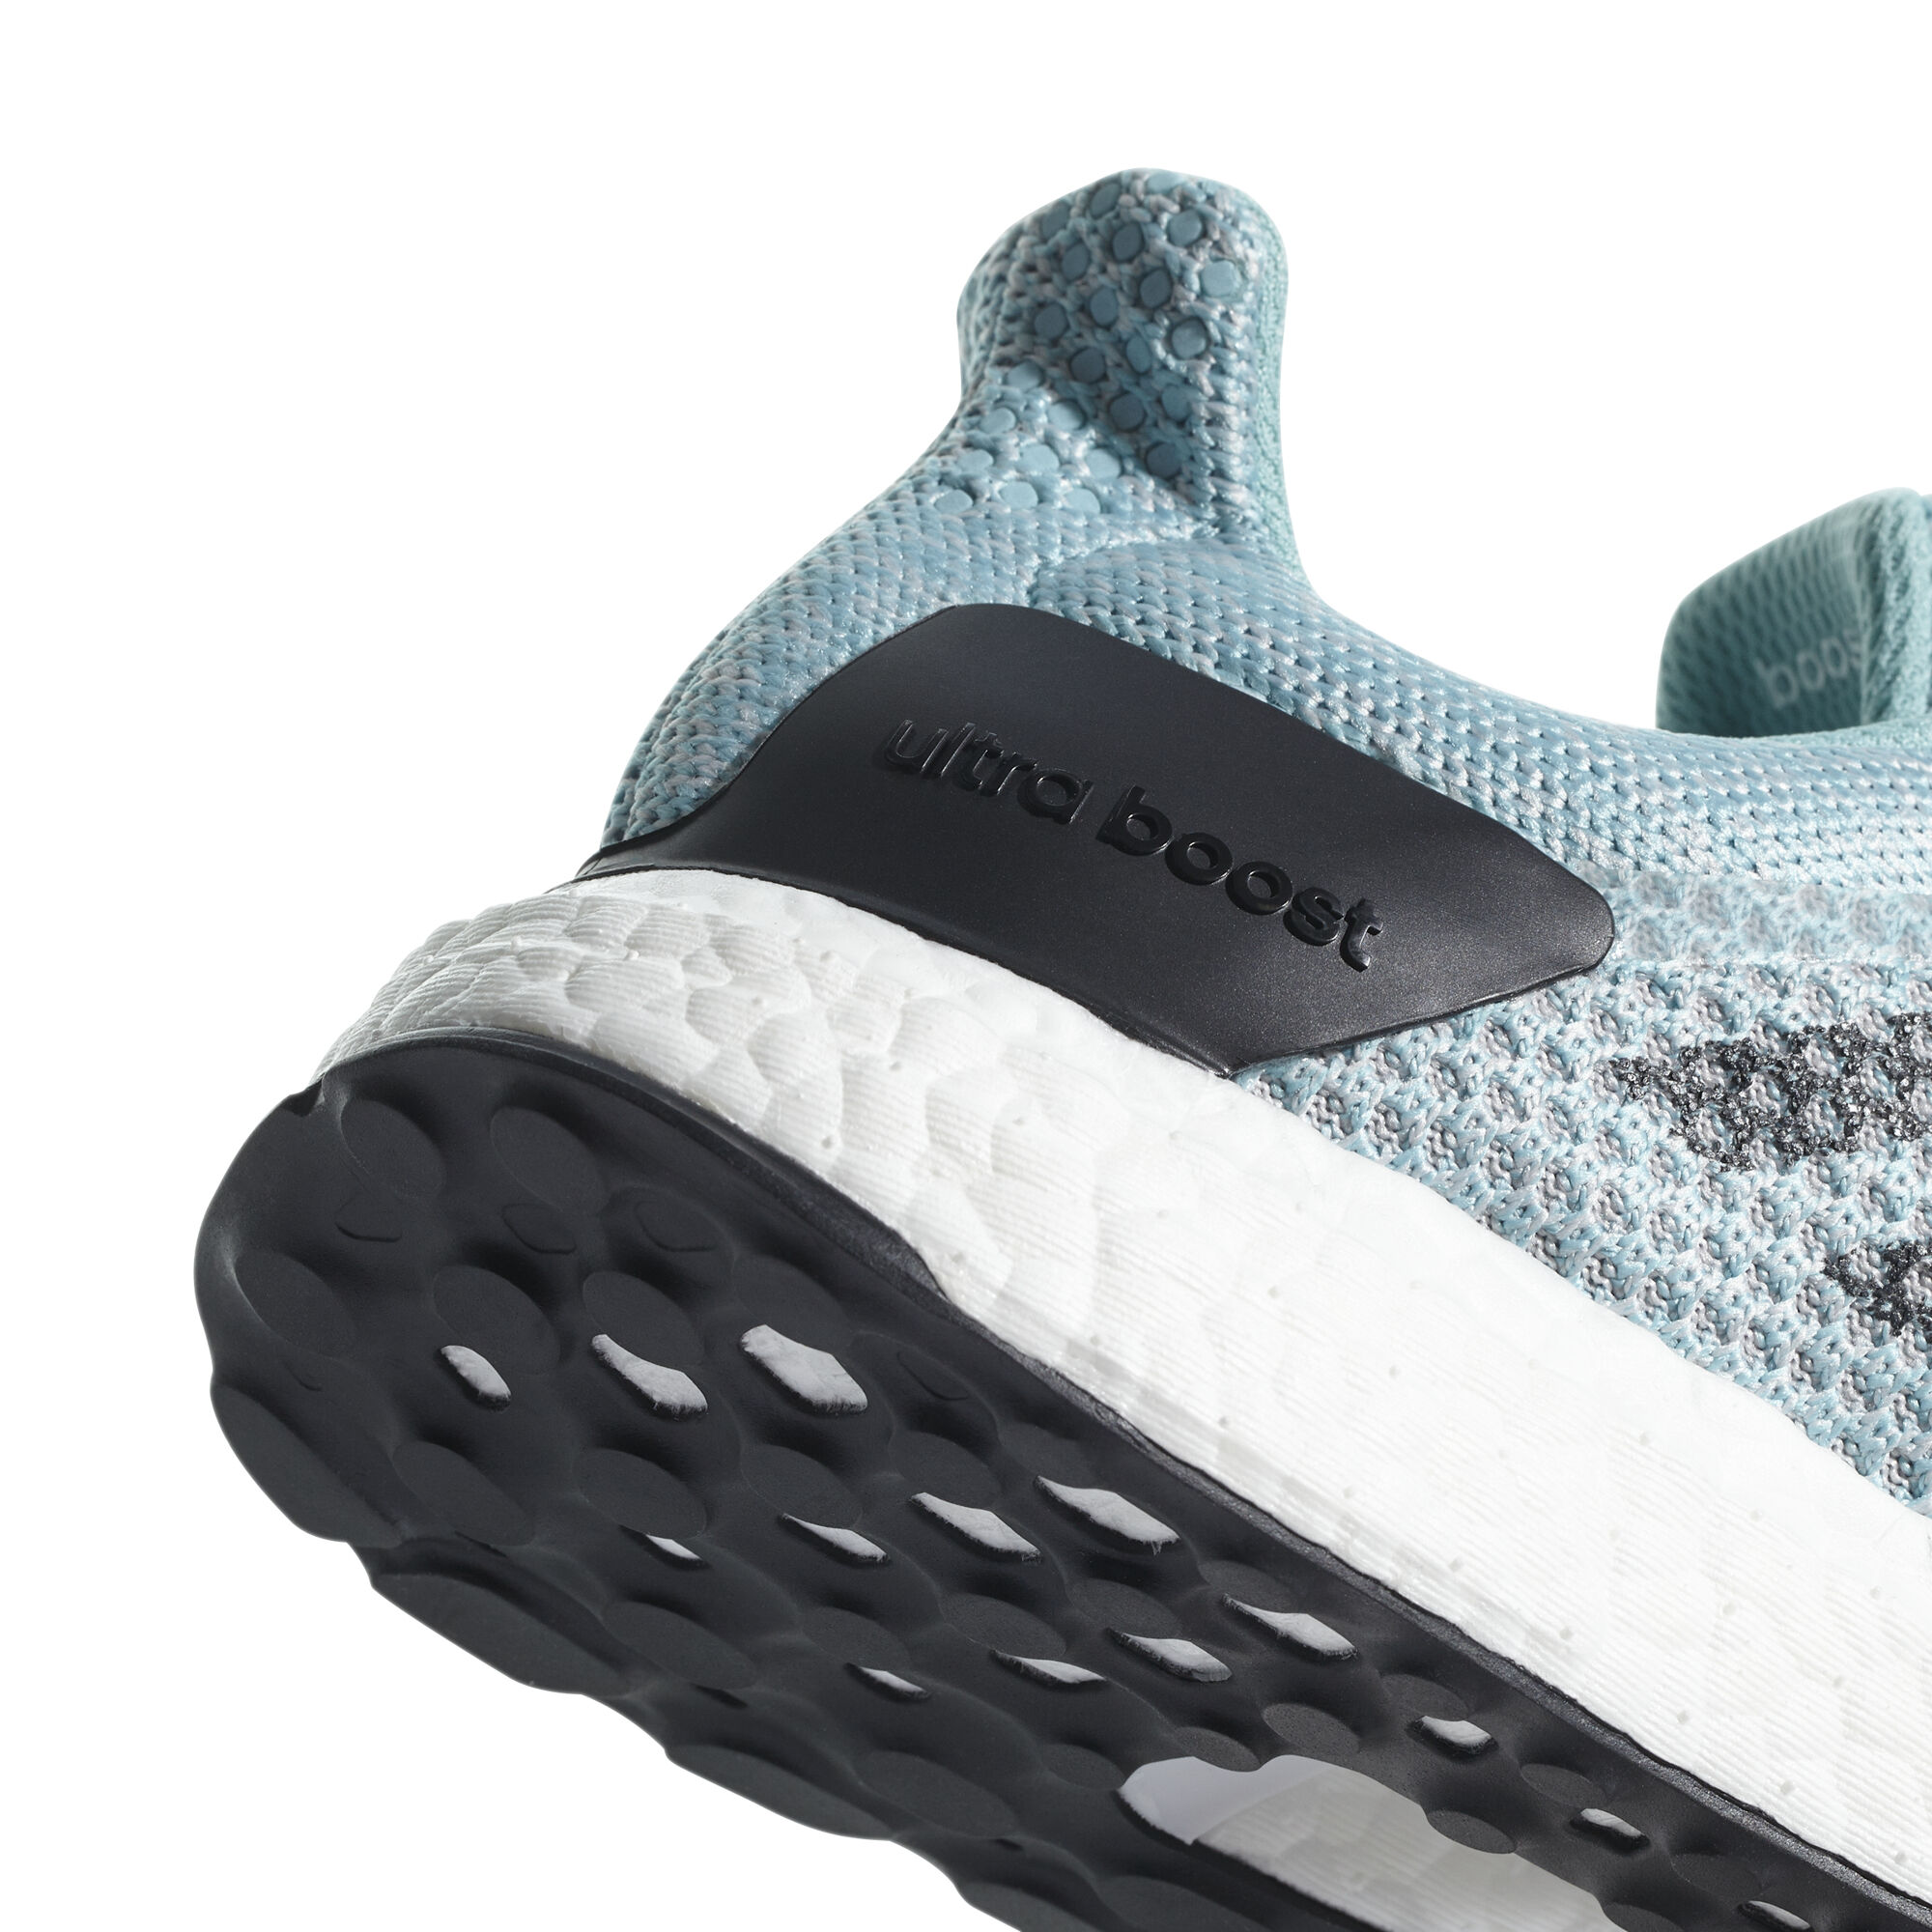 new style 2438b bdbd7 ... adidas adidas adidas adidas. Ultra Boost ST Parley ...